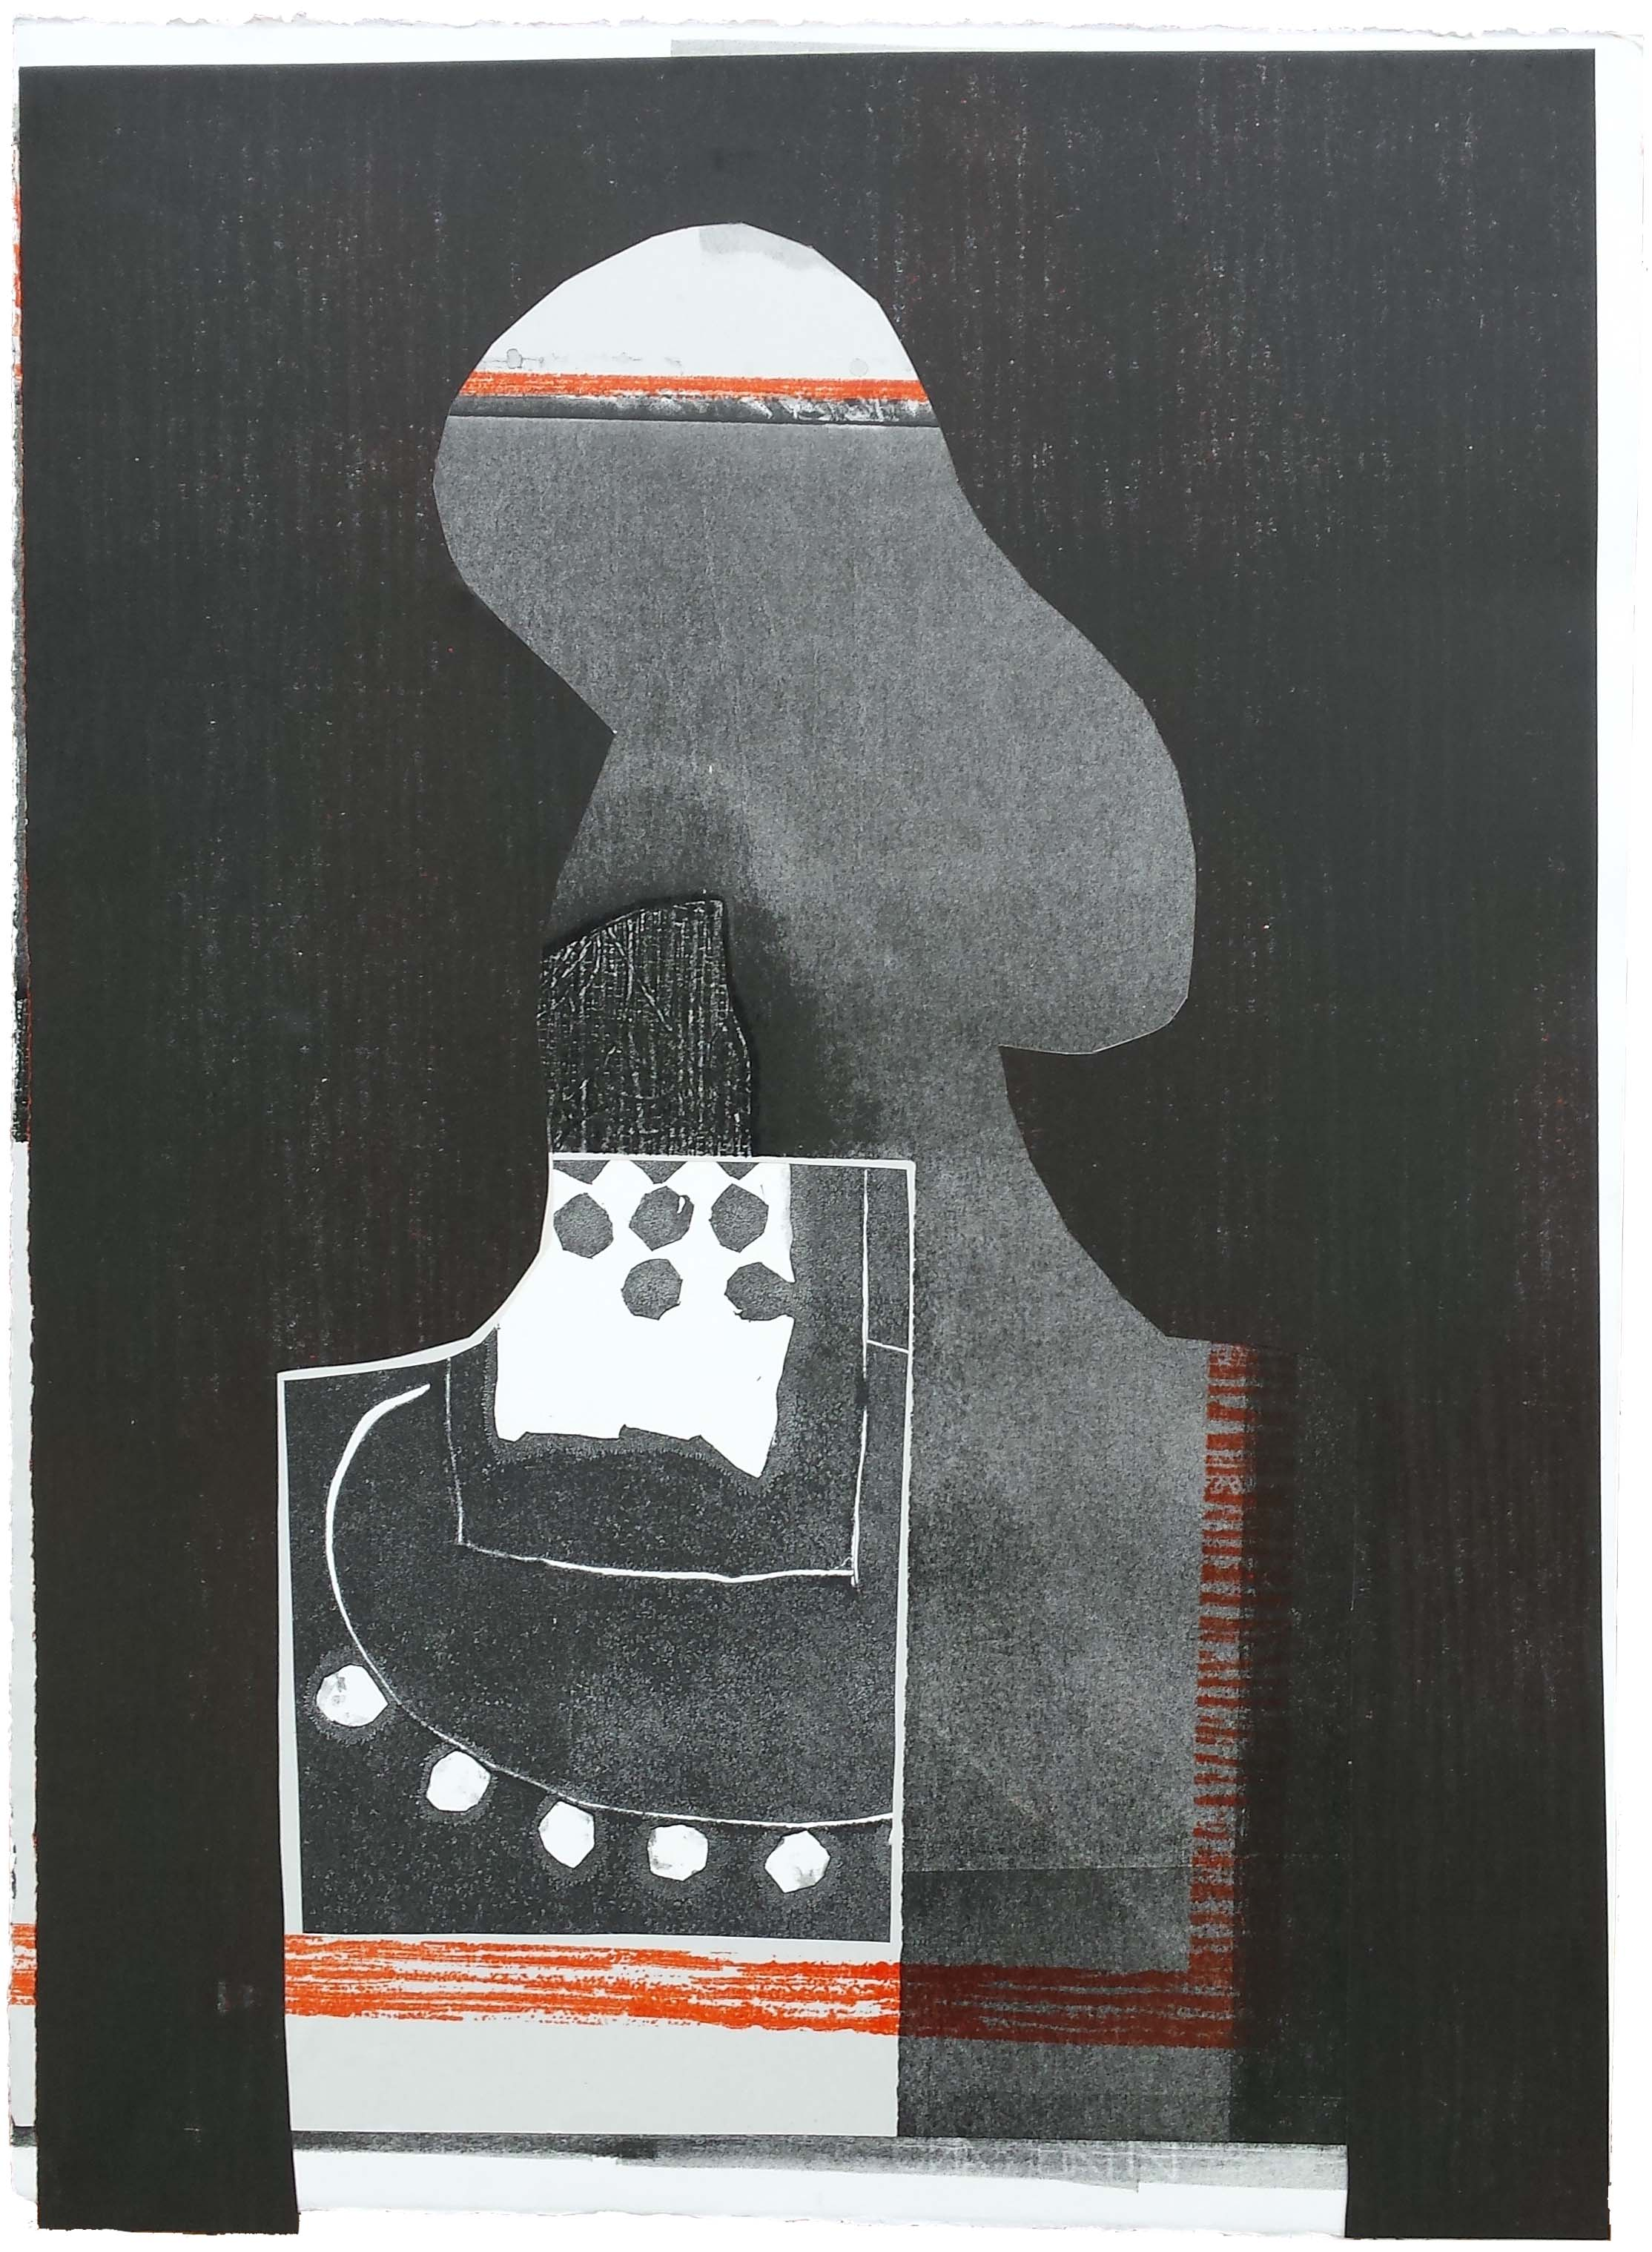 'Flot Flot Hood' 2016 by Helen Hayward. Relief print, monoprint, collage 71.4 x 51.3 cm